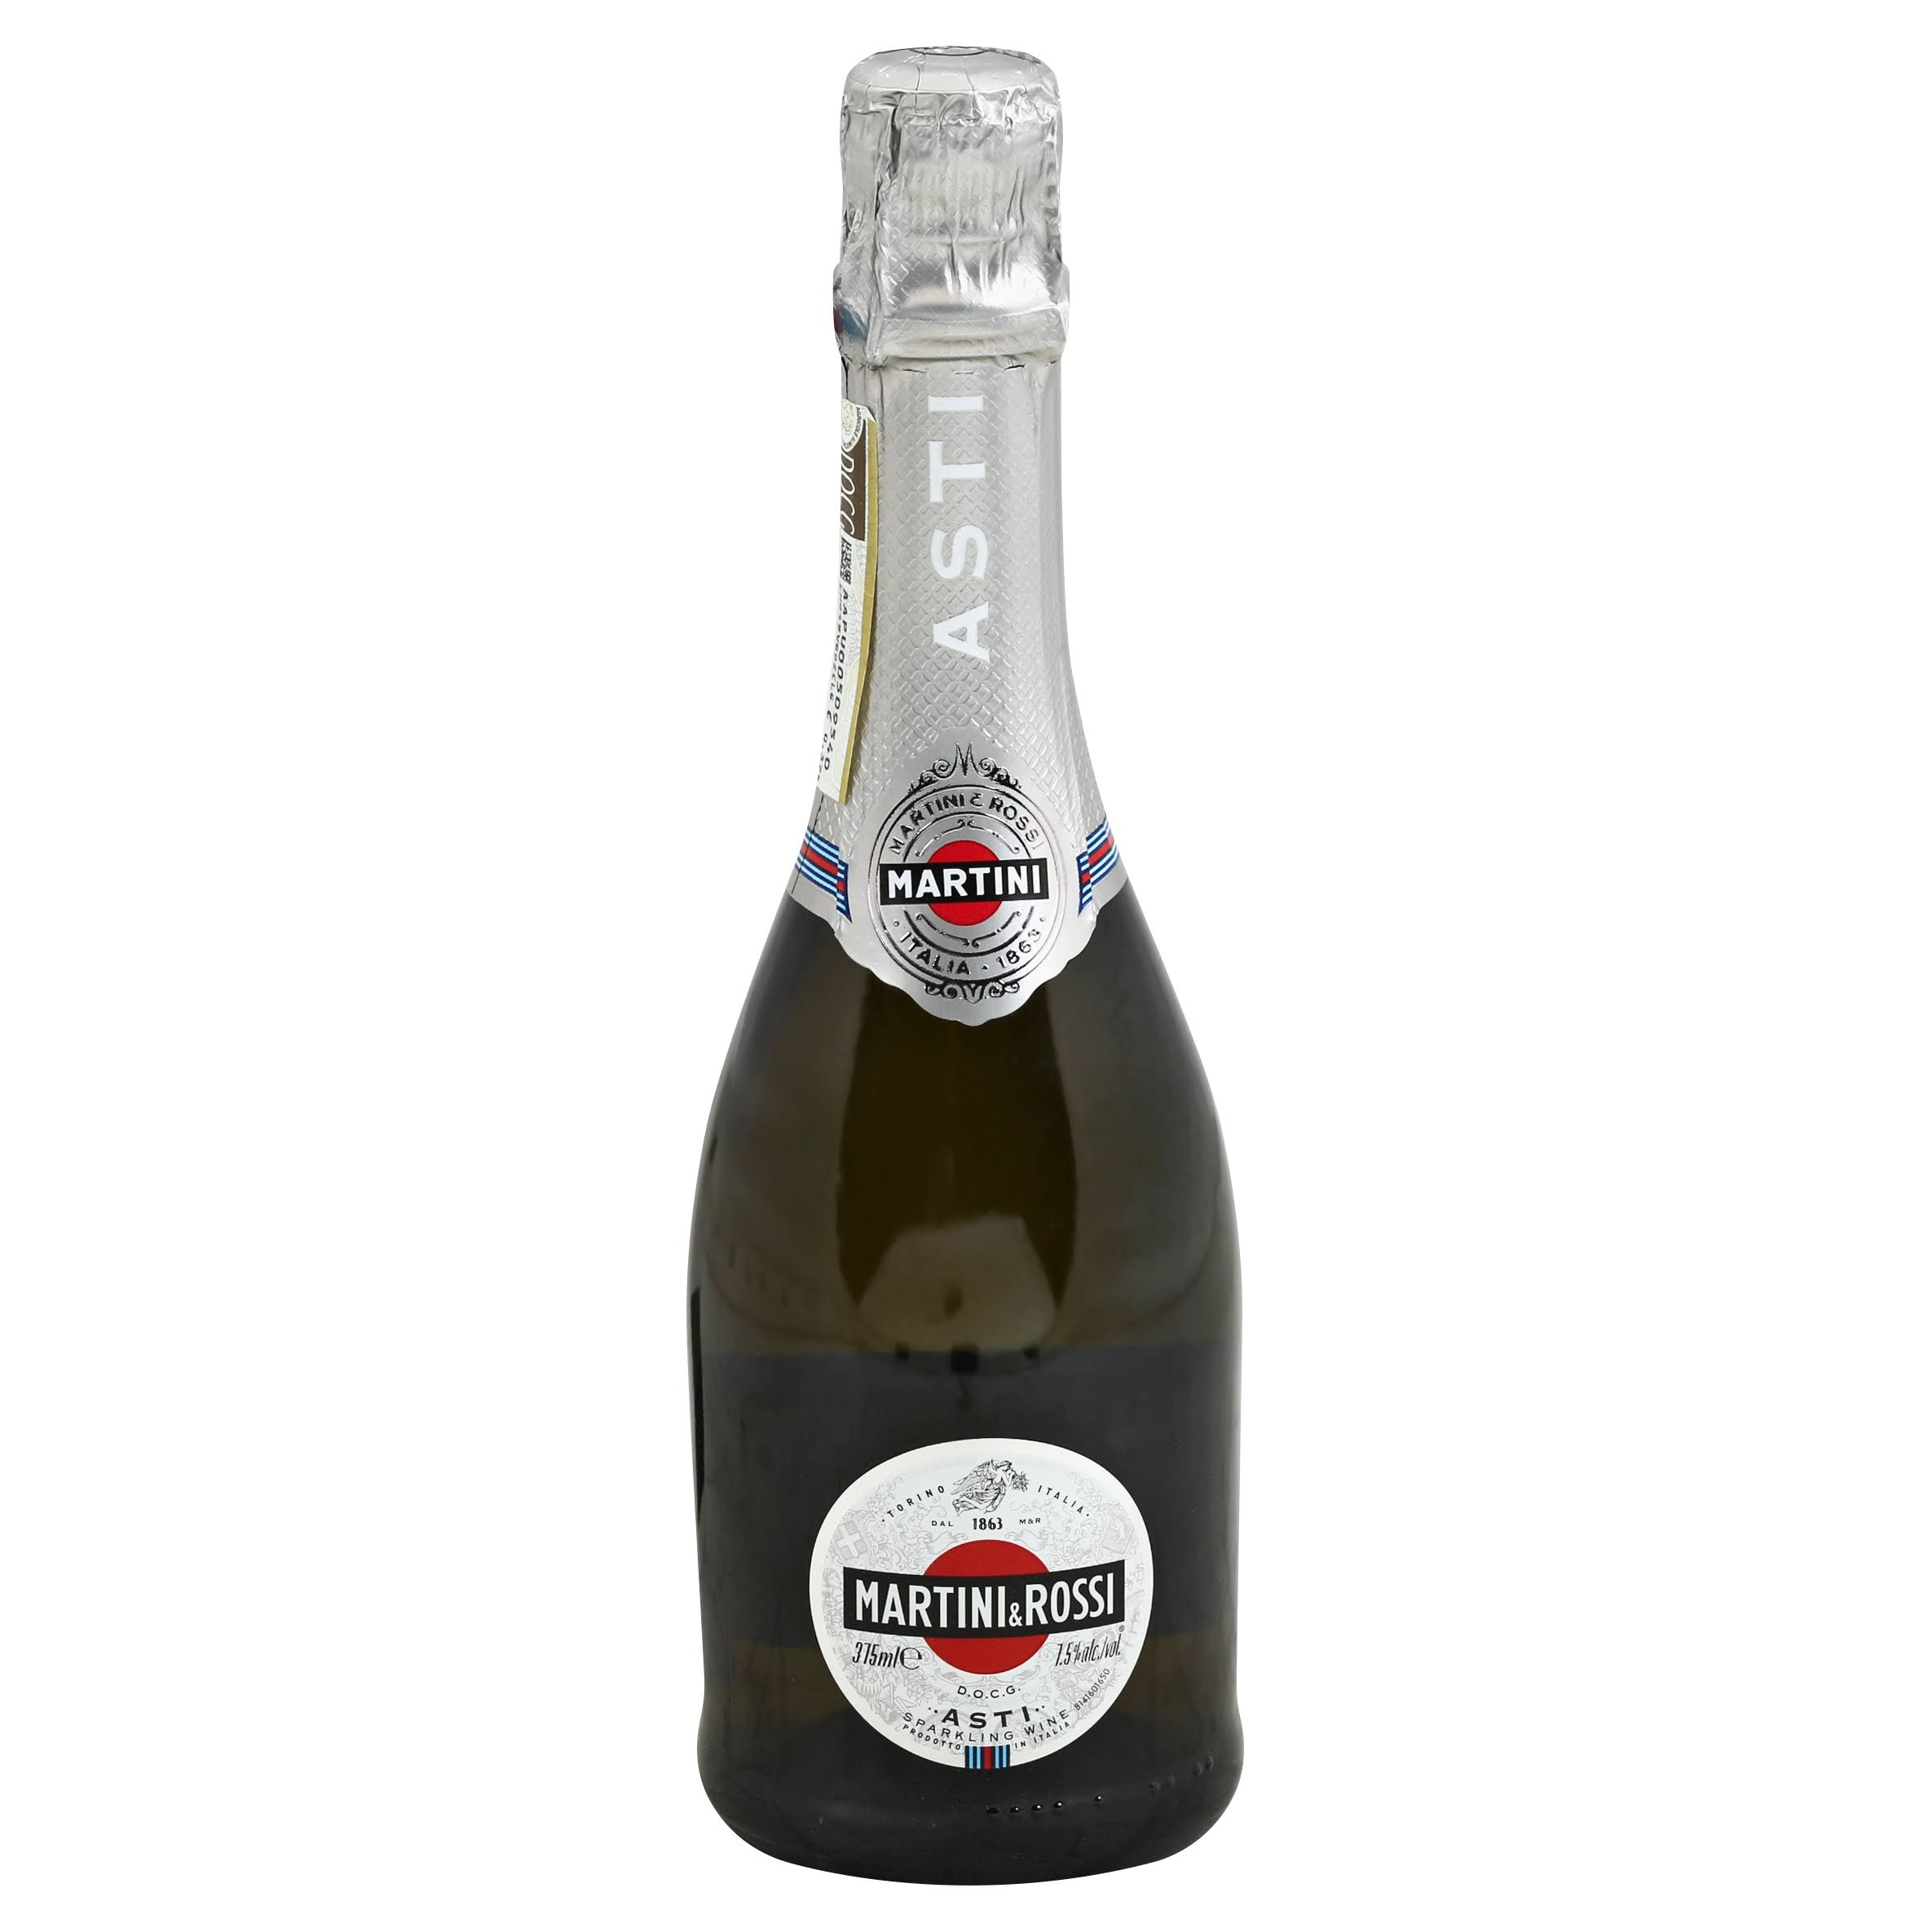 Martini & Rossi Sparkling Wine, Asti - 375 ml